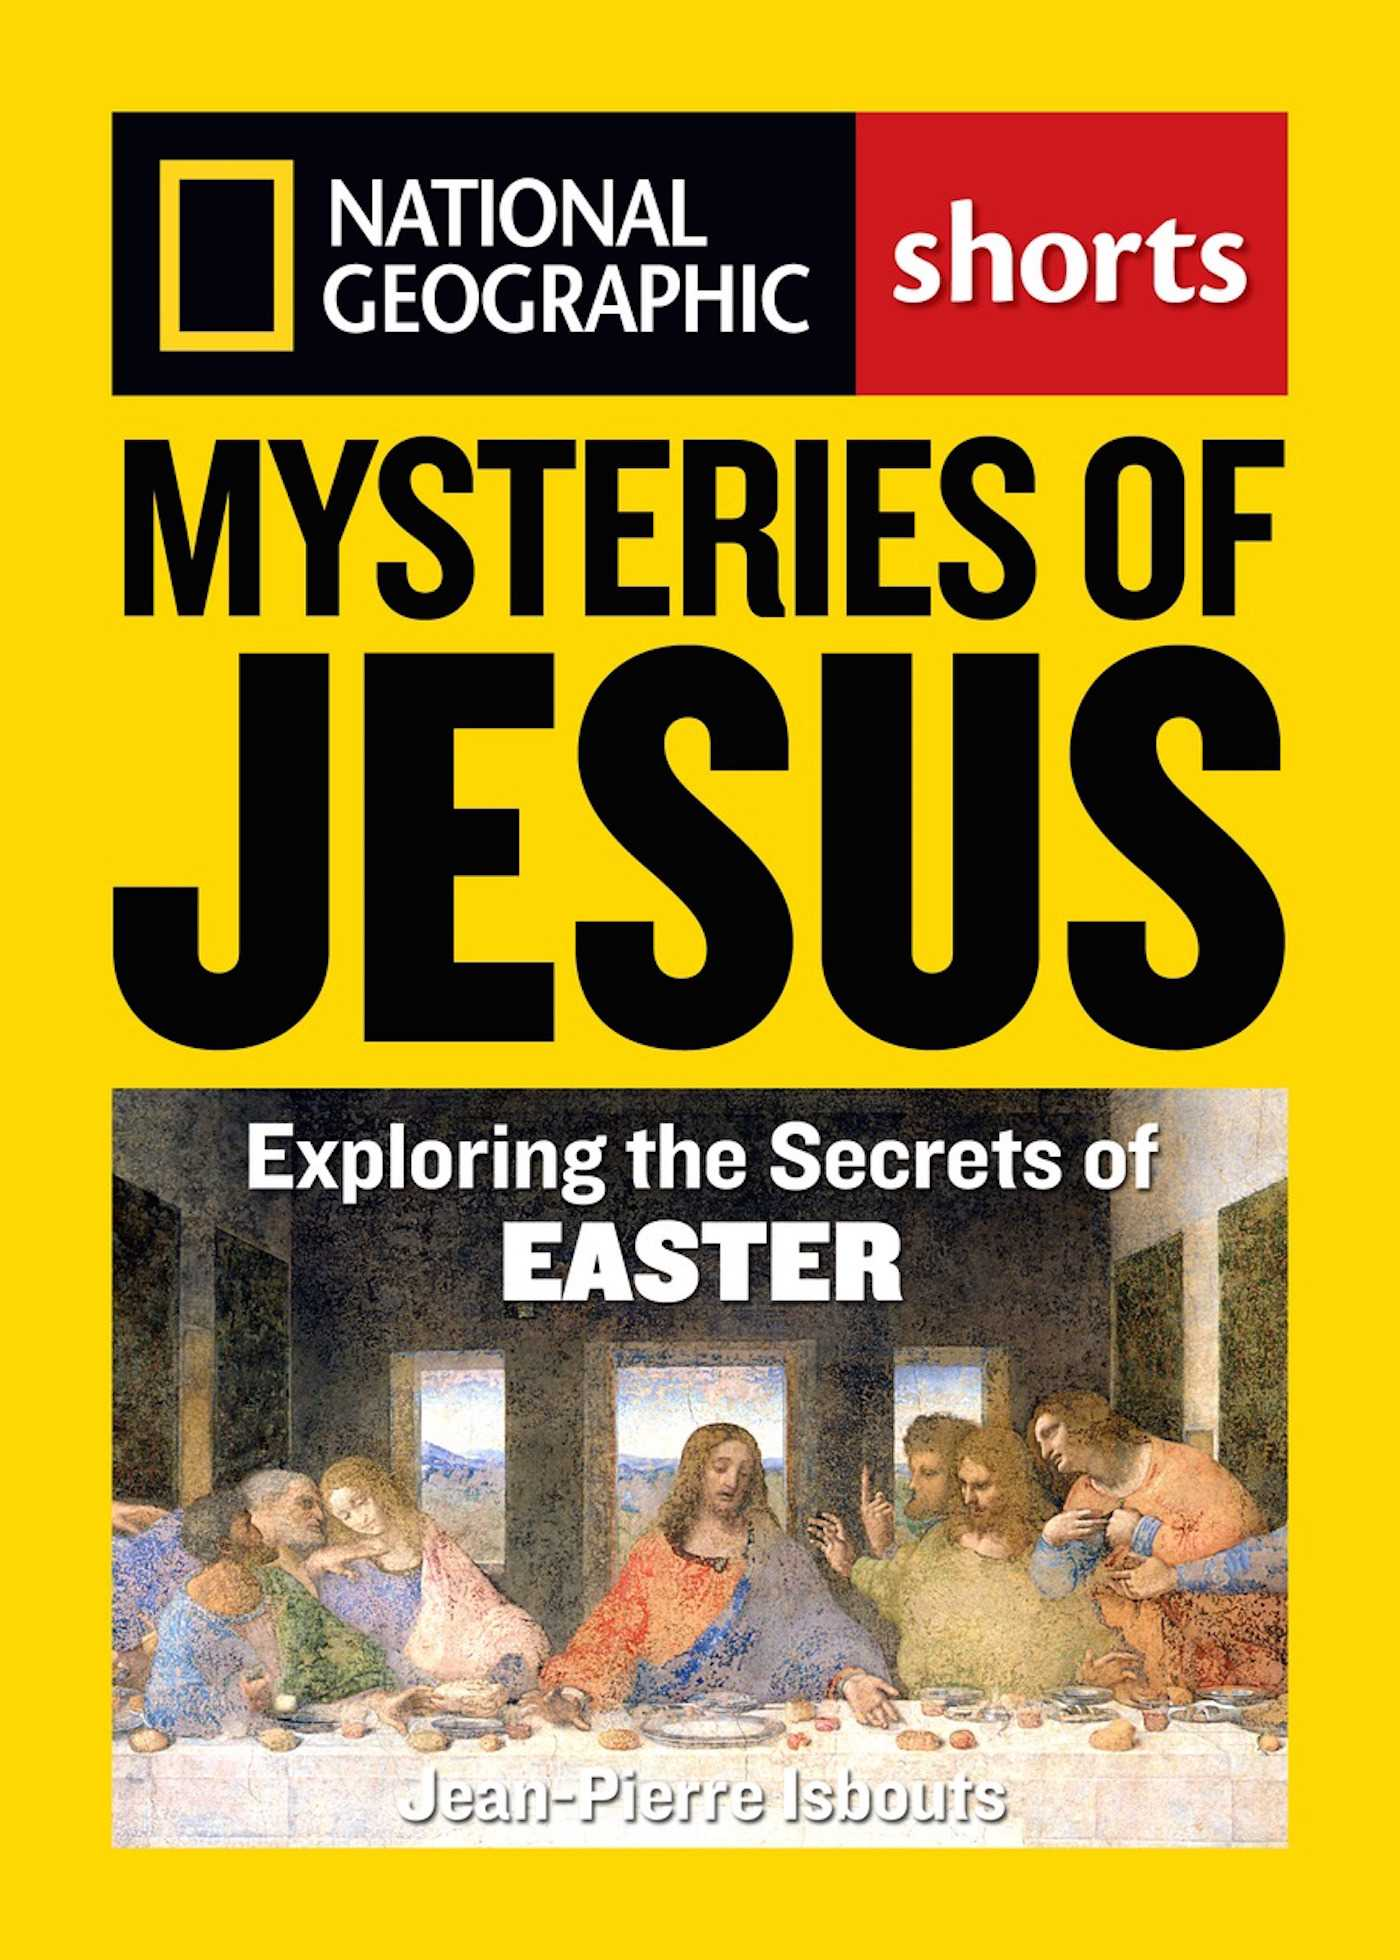 Mysteries of jesus 9781426209789 hr